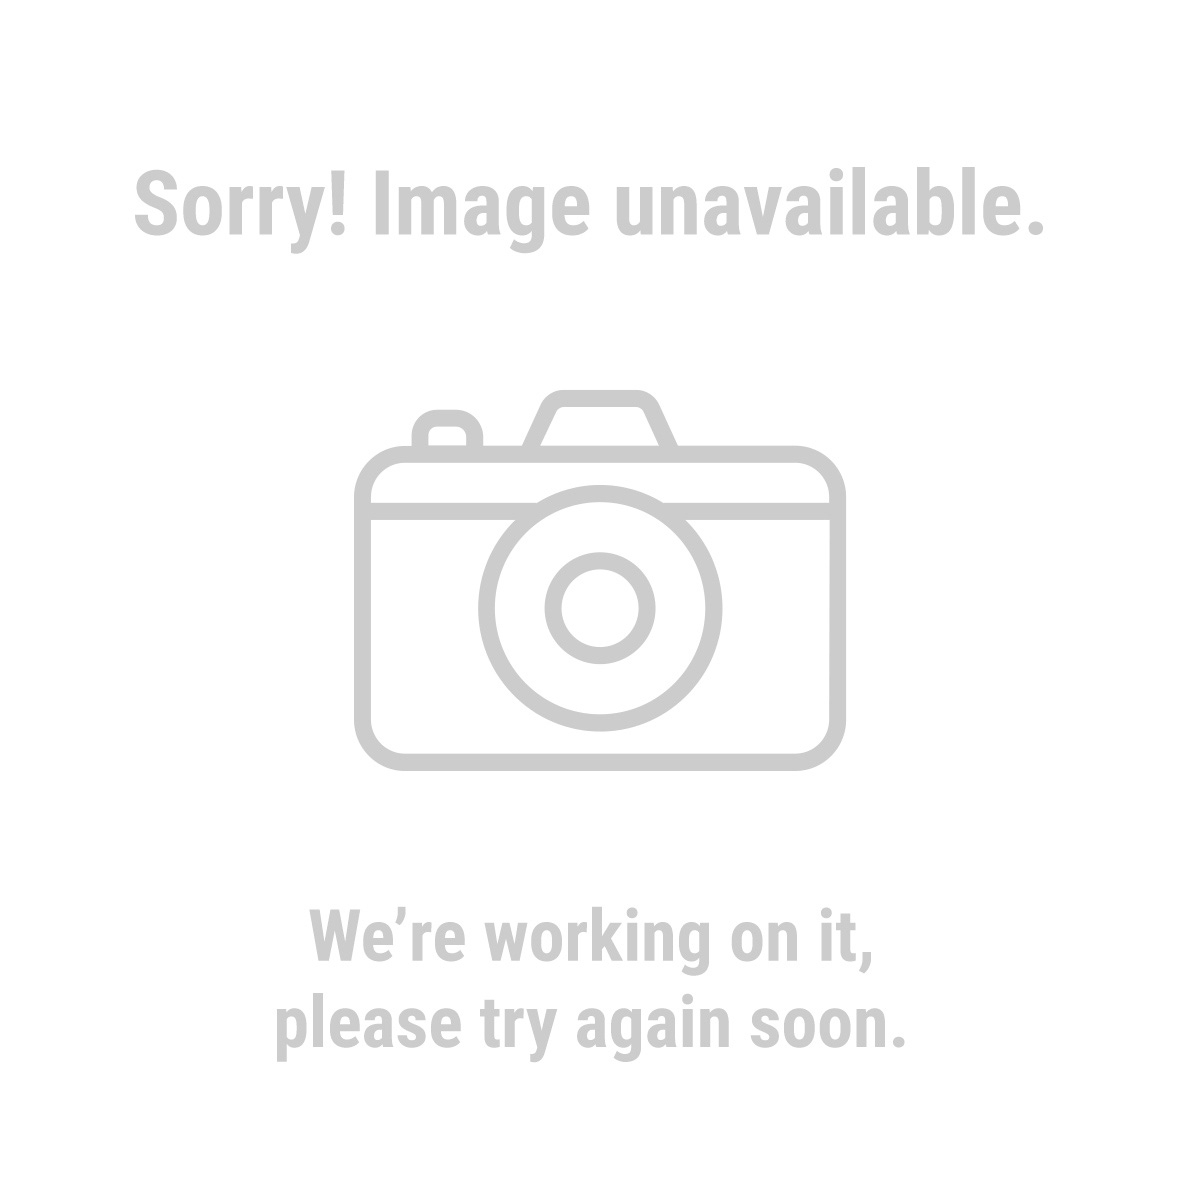 HFT 41444 50 Ft. x 12 Gauge Outdoor Extension Cord